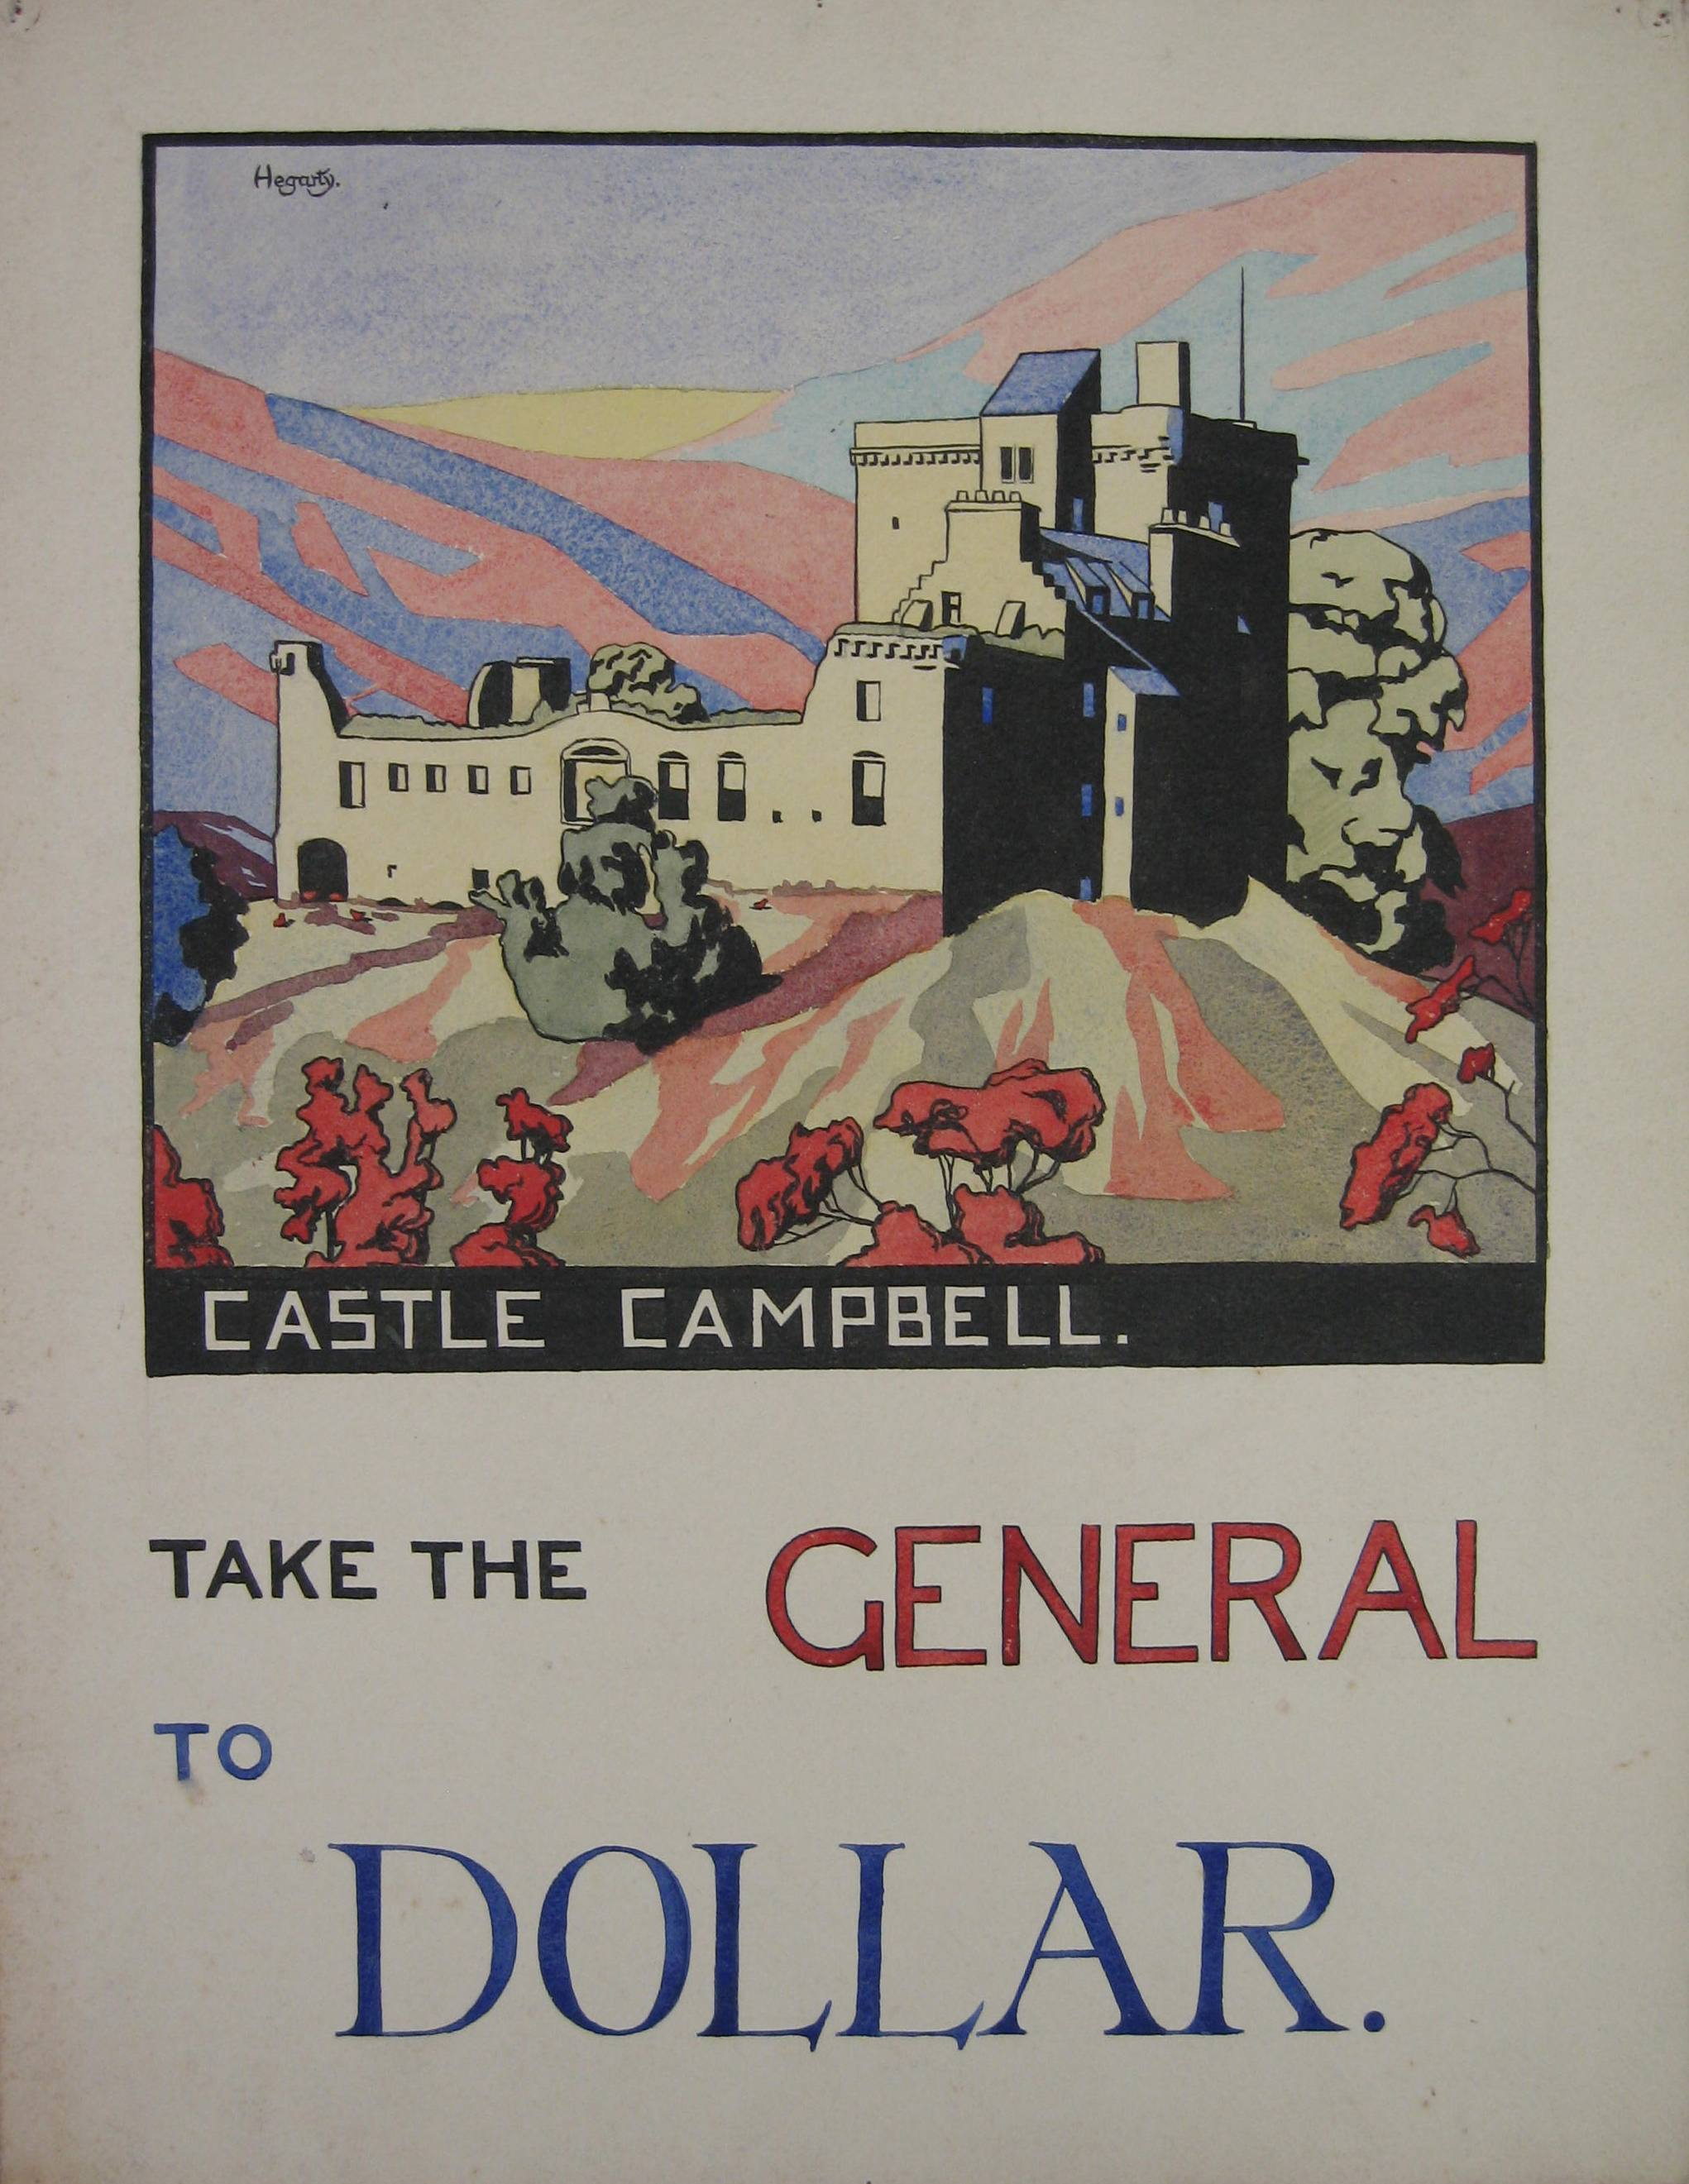 NMC 570, Poster depicting Castle Campbell, Dollar. For the Scottish General Omnibus Company Ltd, by John Hegarty, c1927